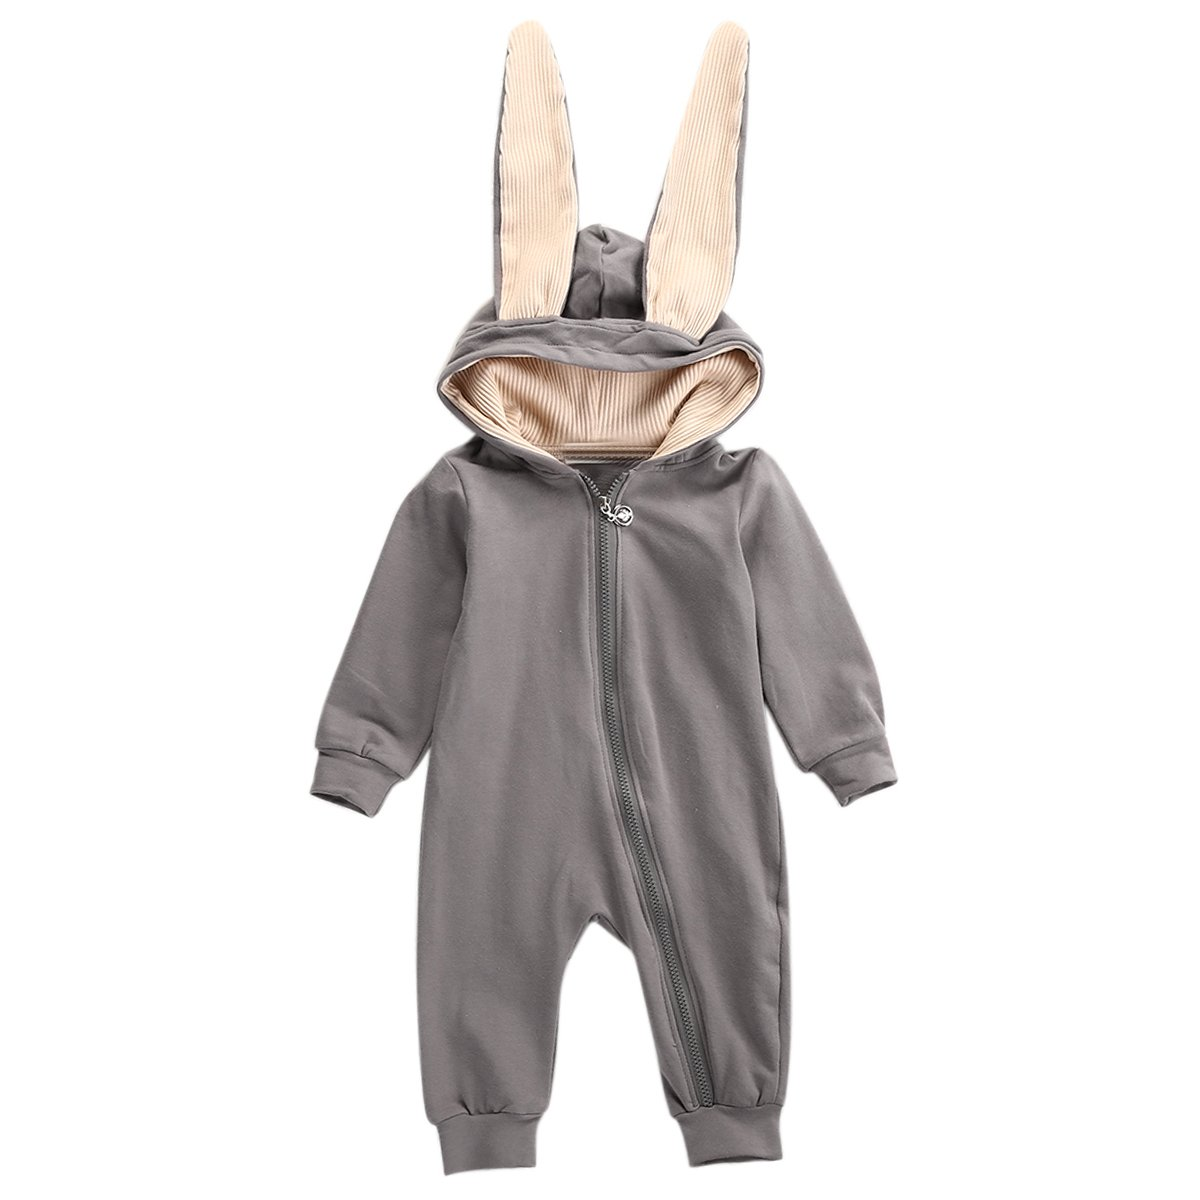 Puseky Baby Boys Girls Rabbit Ear Warm Hooded Romper Zipper Jumpsuit Outfits